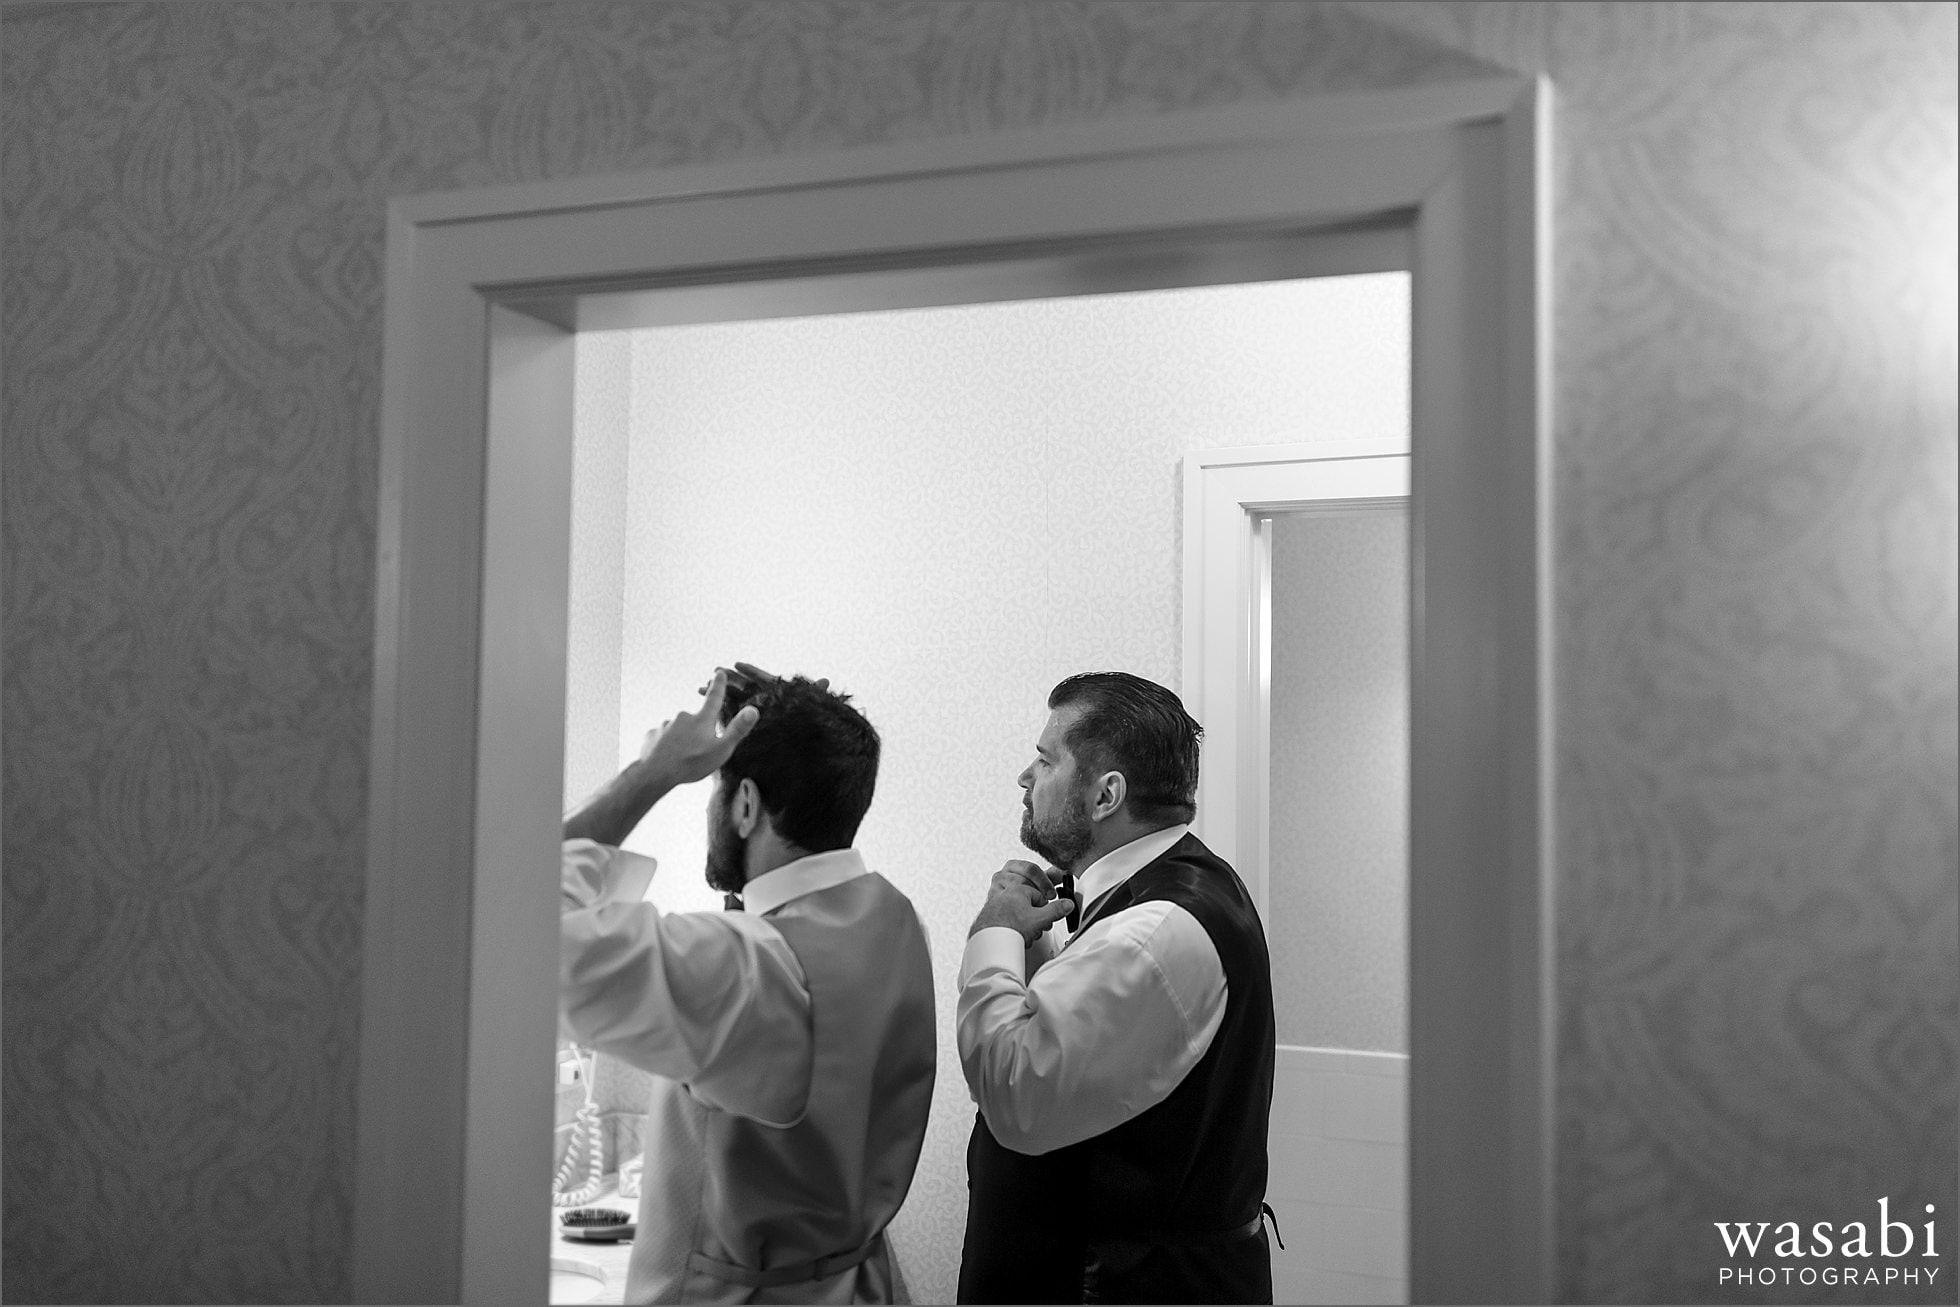 groom and best man do hair in bathroom while getting ready for wedding